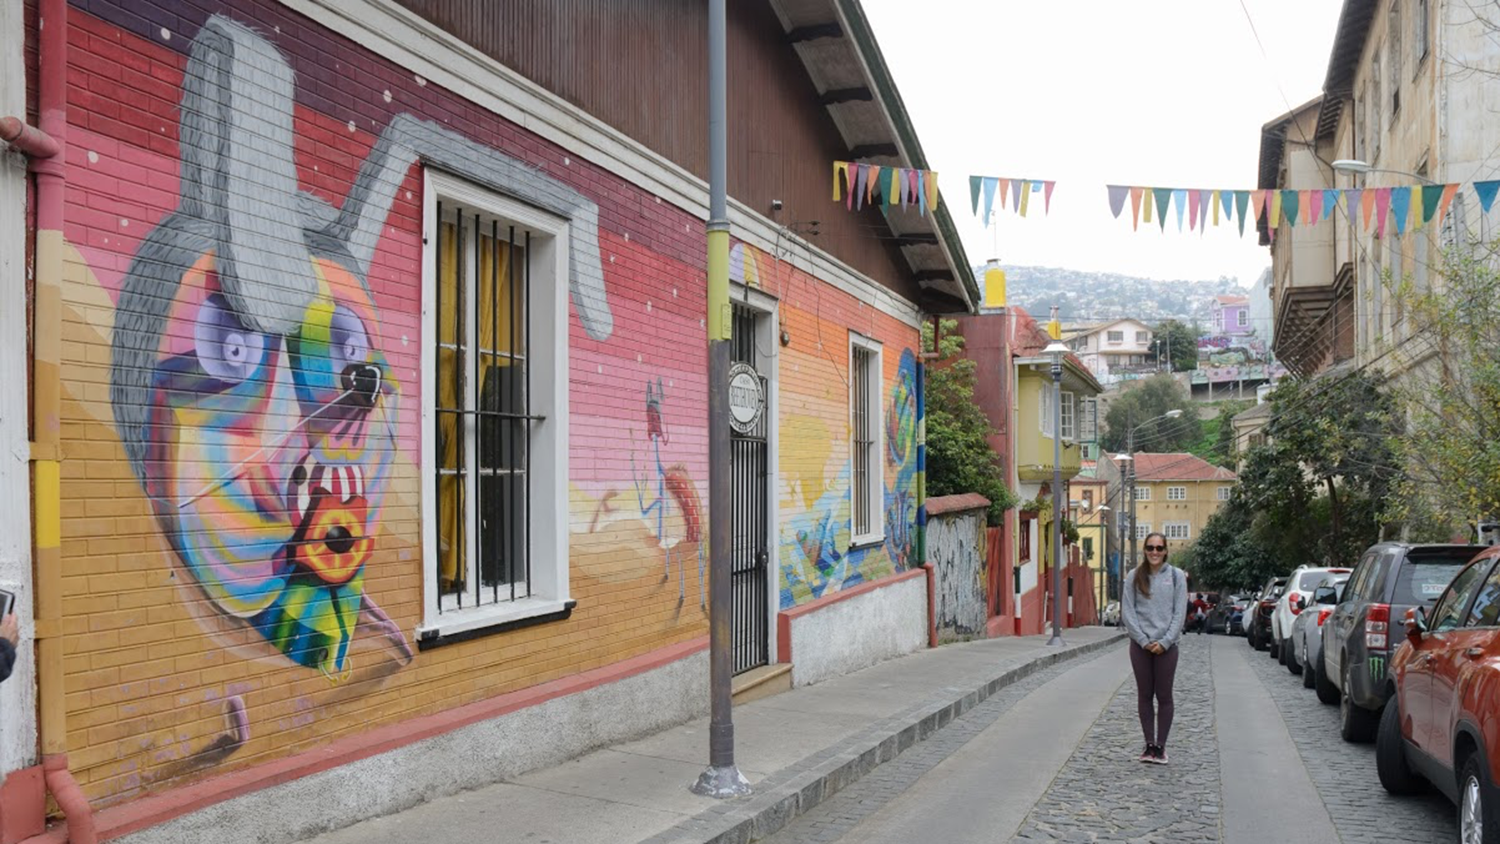 student standing in front of mural in streets of Chile